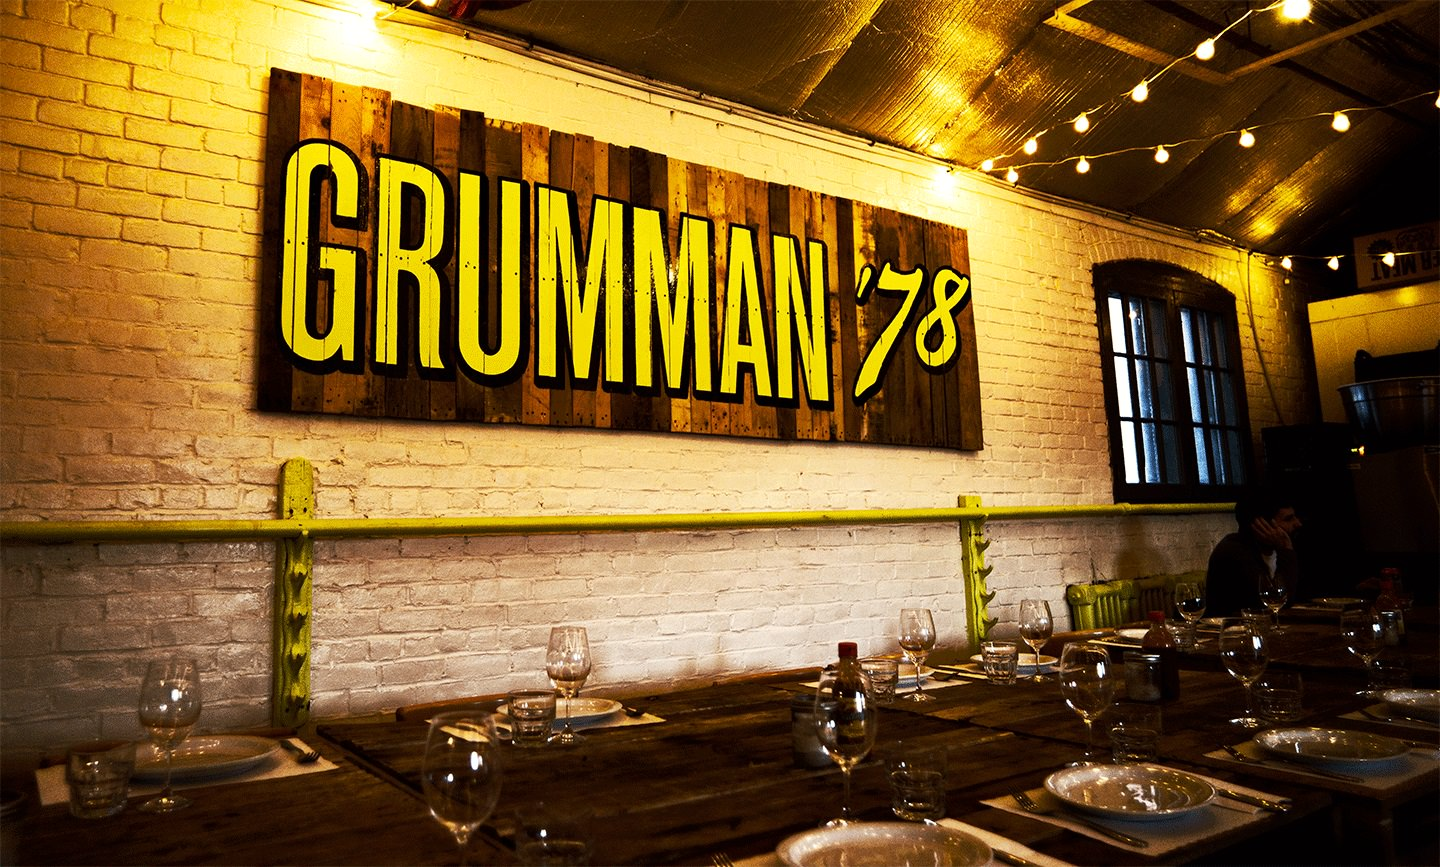 Changes for Grumman in the sweets department